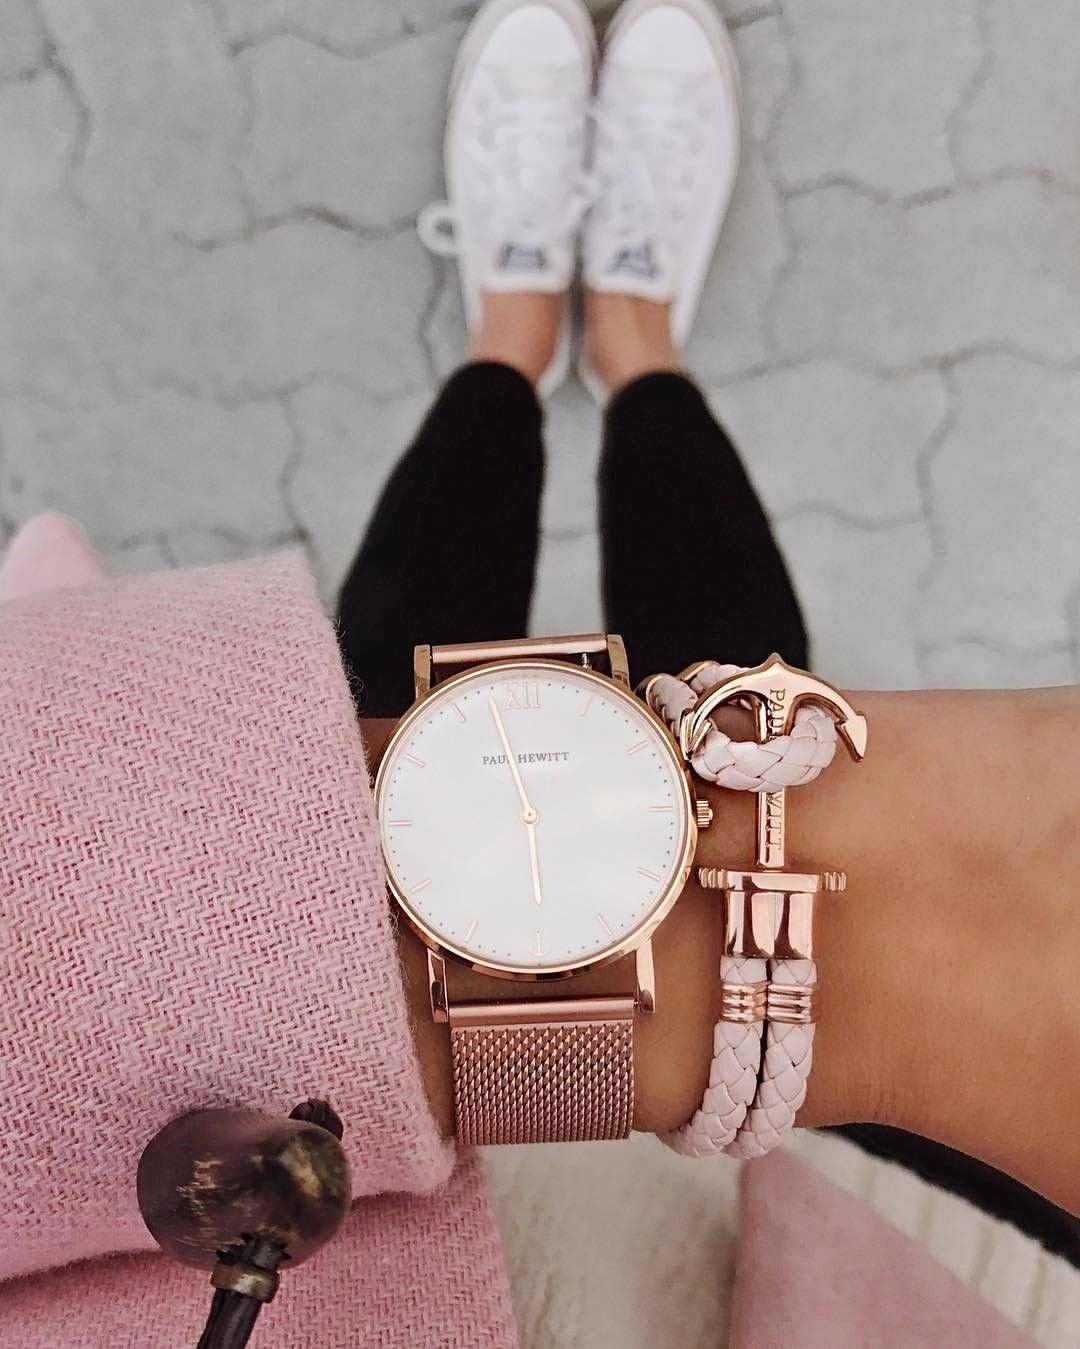 7a16123a33031 Pin by Yolanda Whitner on Accessories in 2019 | Fashion tag ...